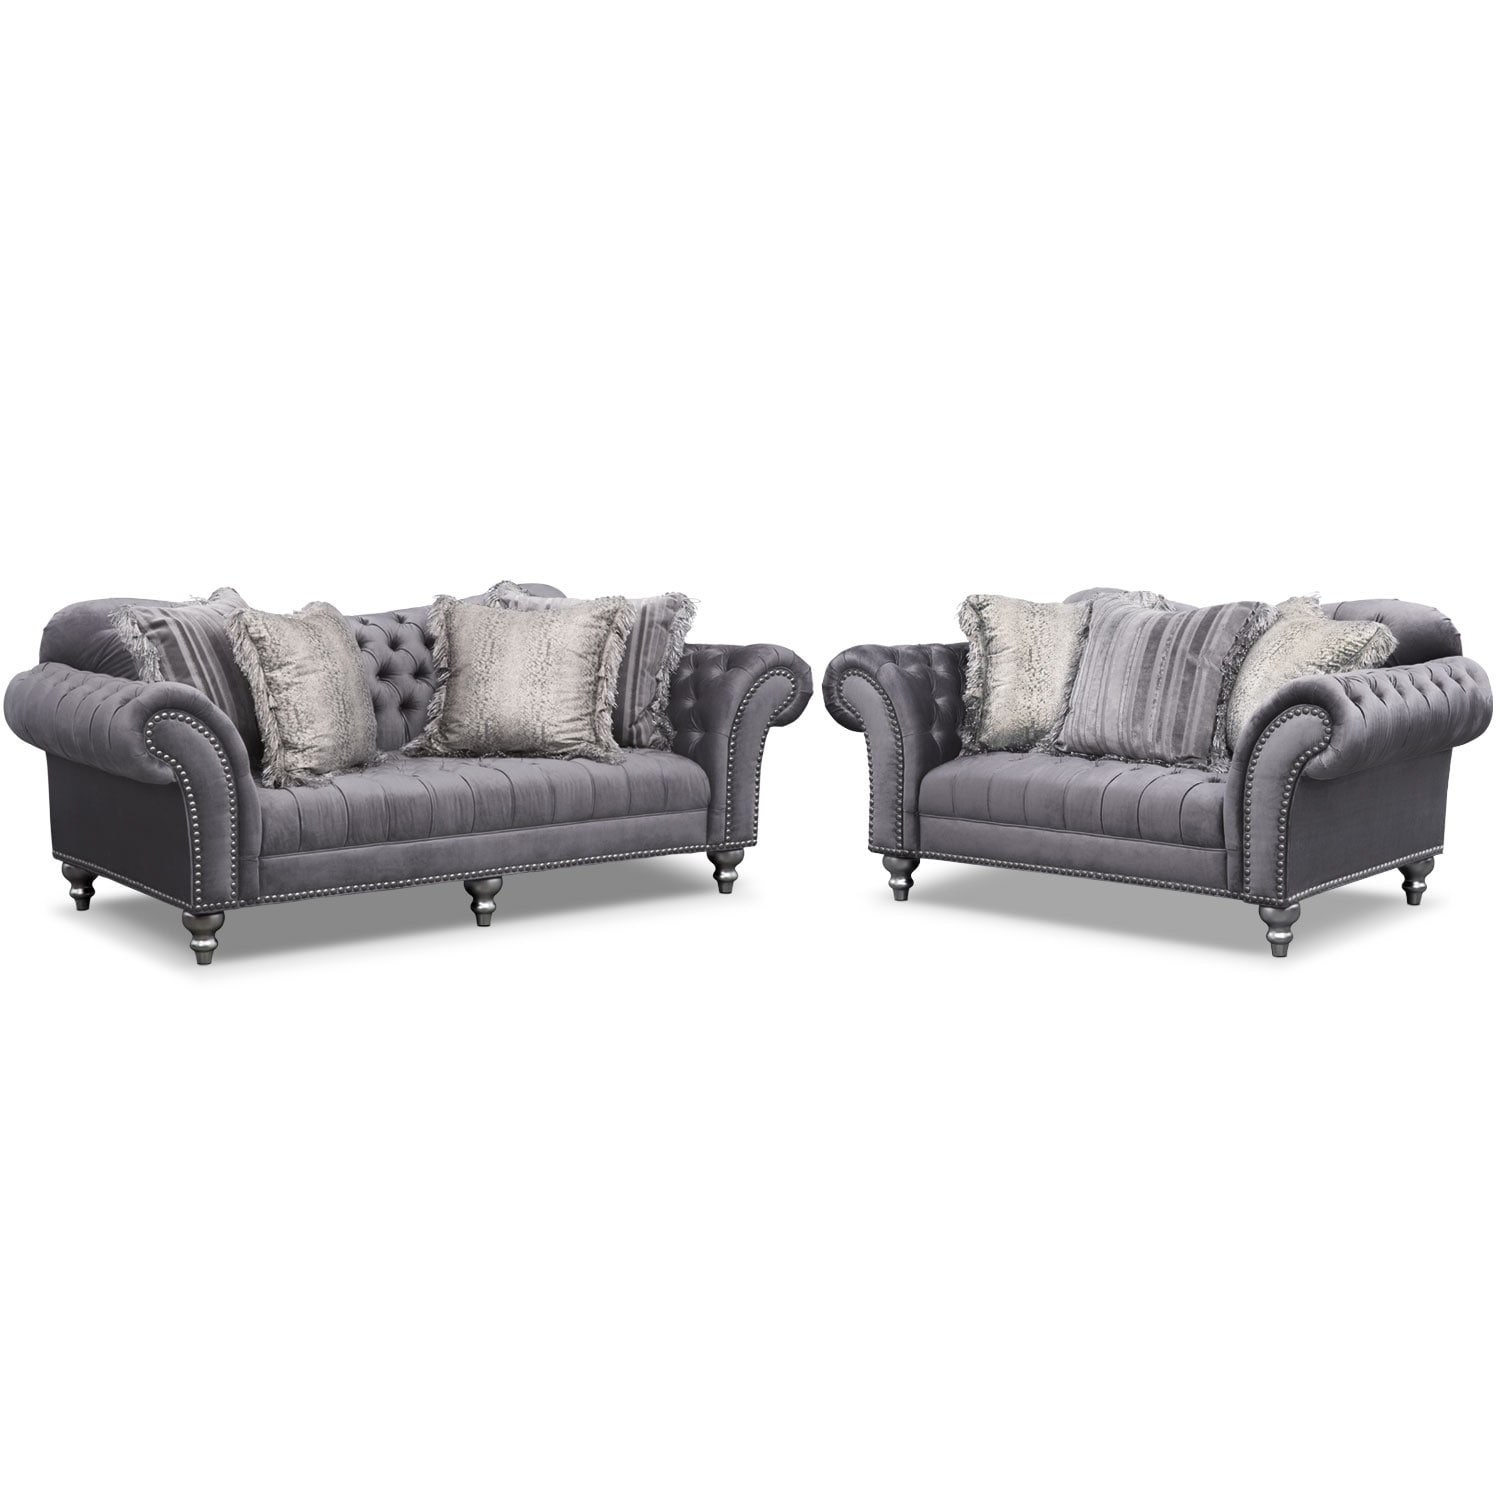 Living Room Furniture - Brittney Sofa and Loveseat Set- Gray